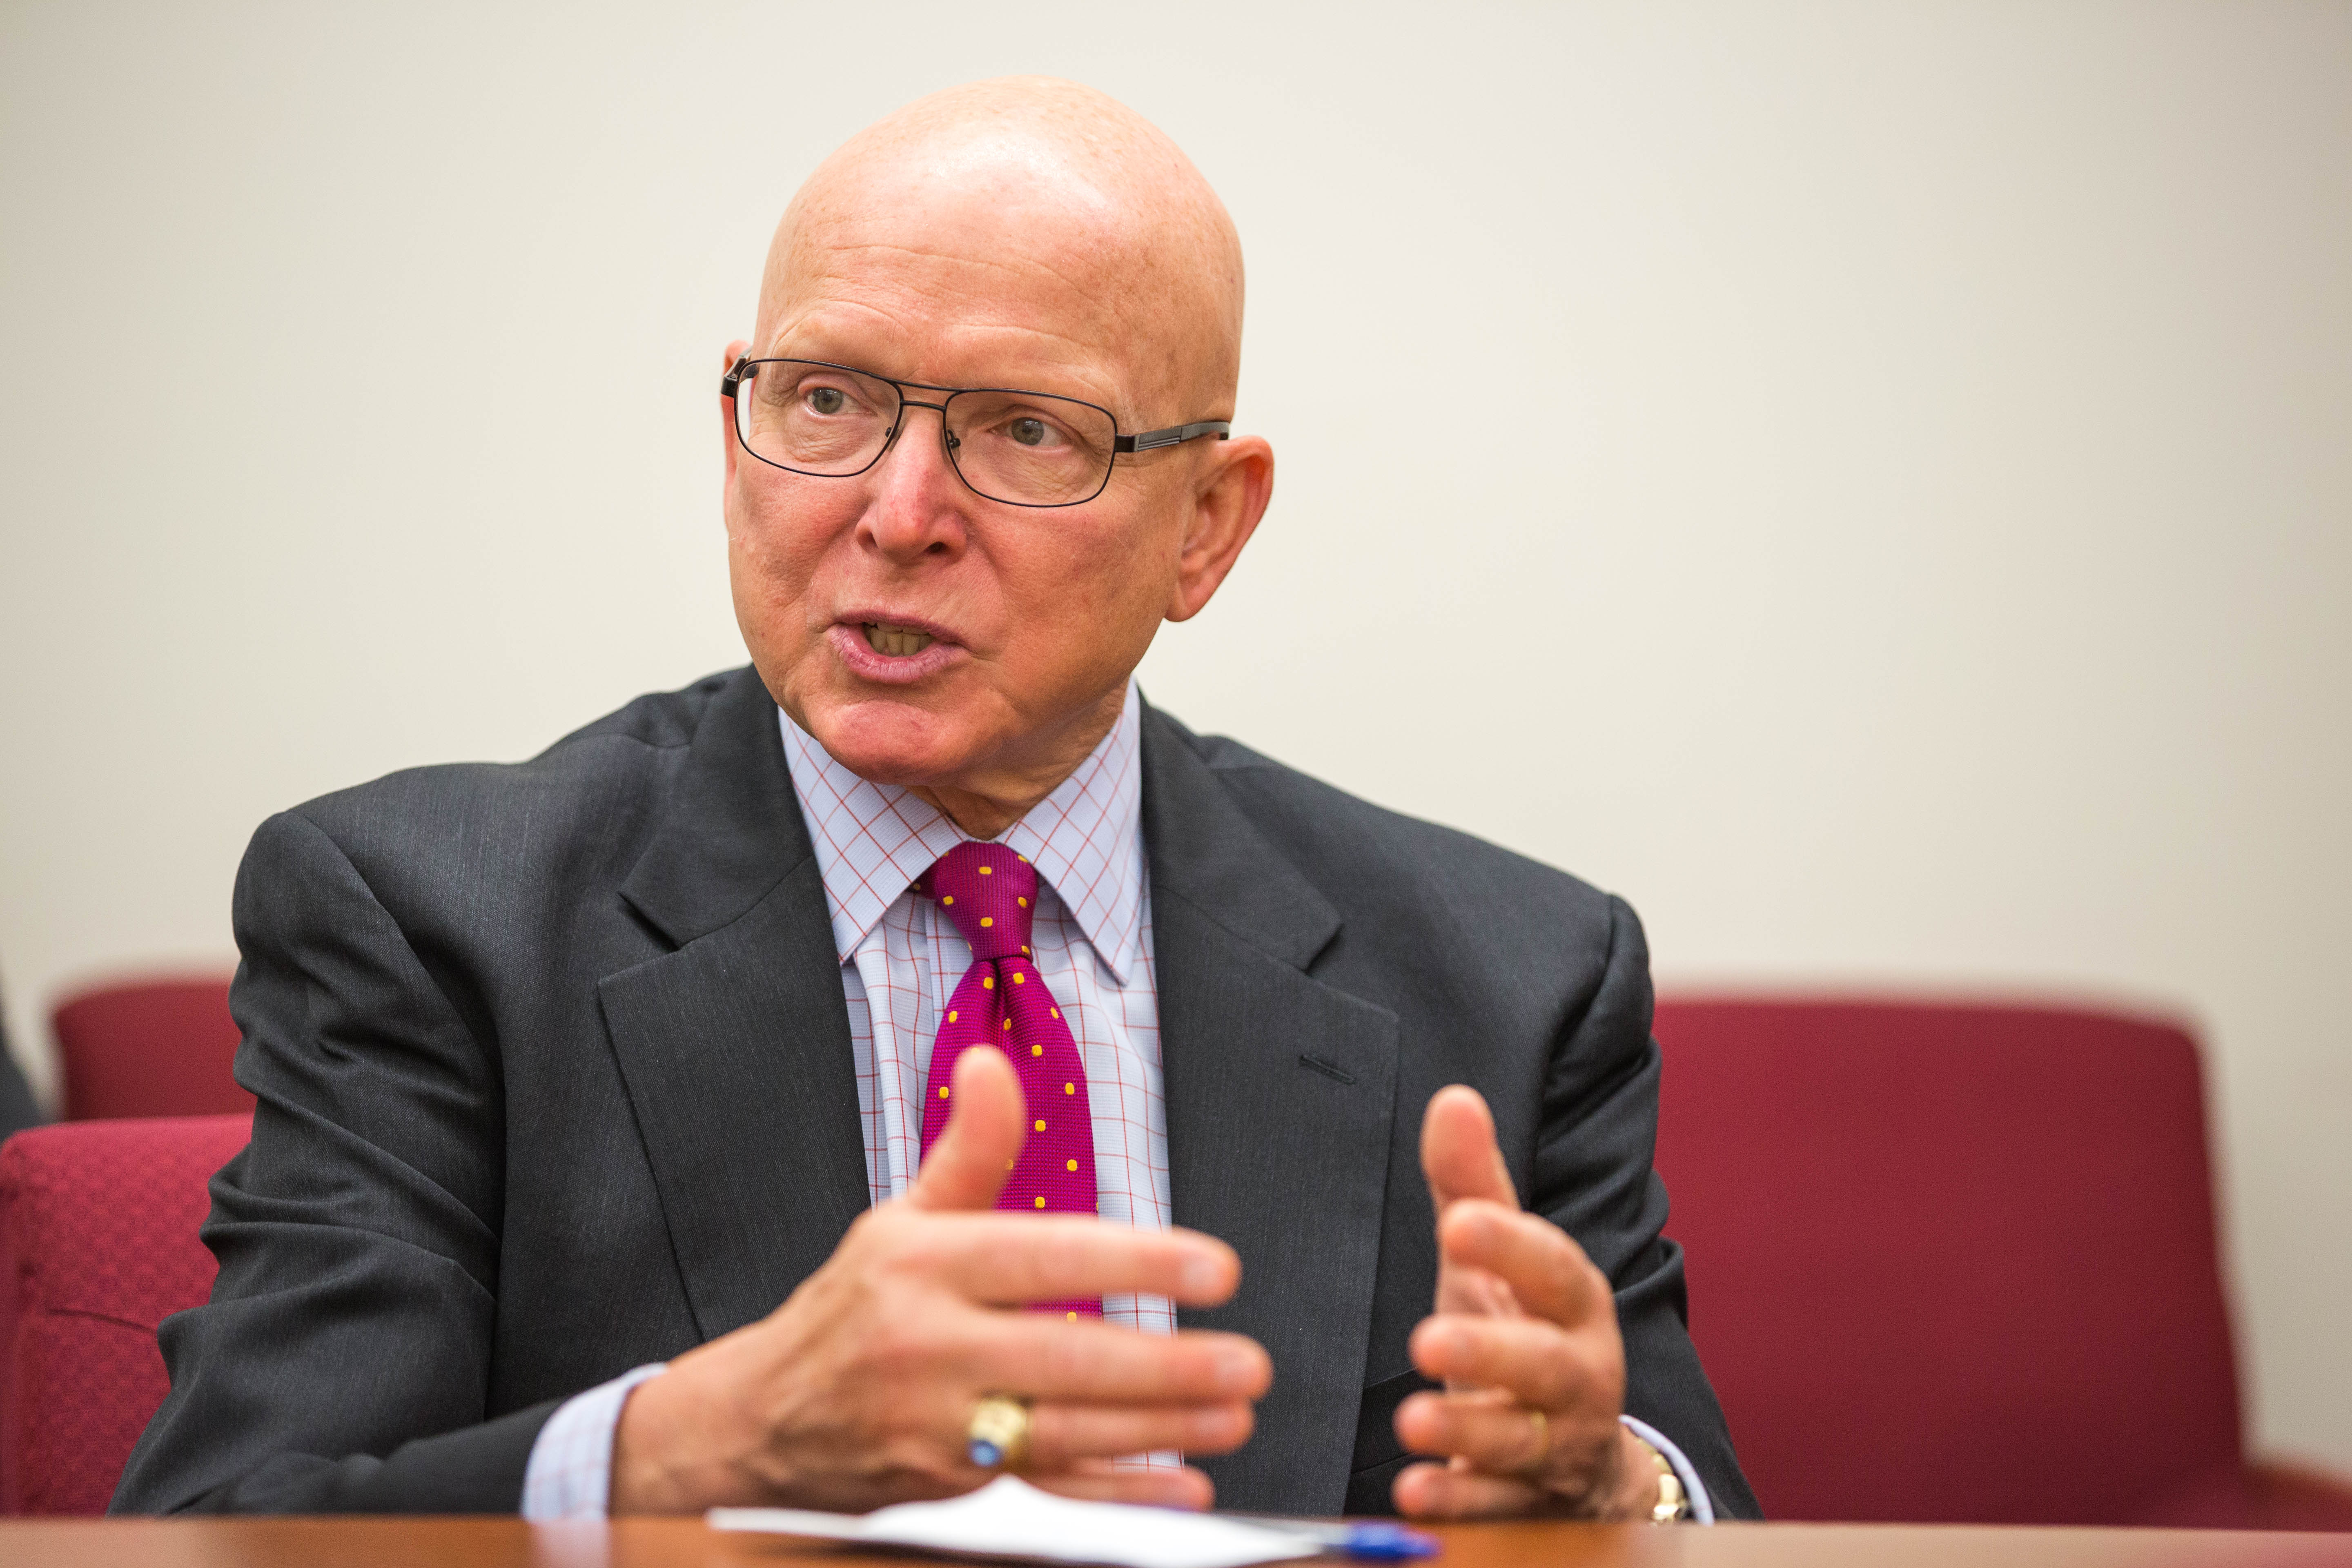 Adm. Robert Papp, U.S. Special Representative for the Arctic, speaks to reporters at Alaska Dispatch News offices on Thursday, Aug. 25, 2016. (Loren Holmes / Alaska Dispatch News)